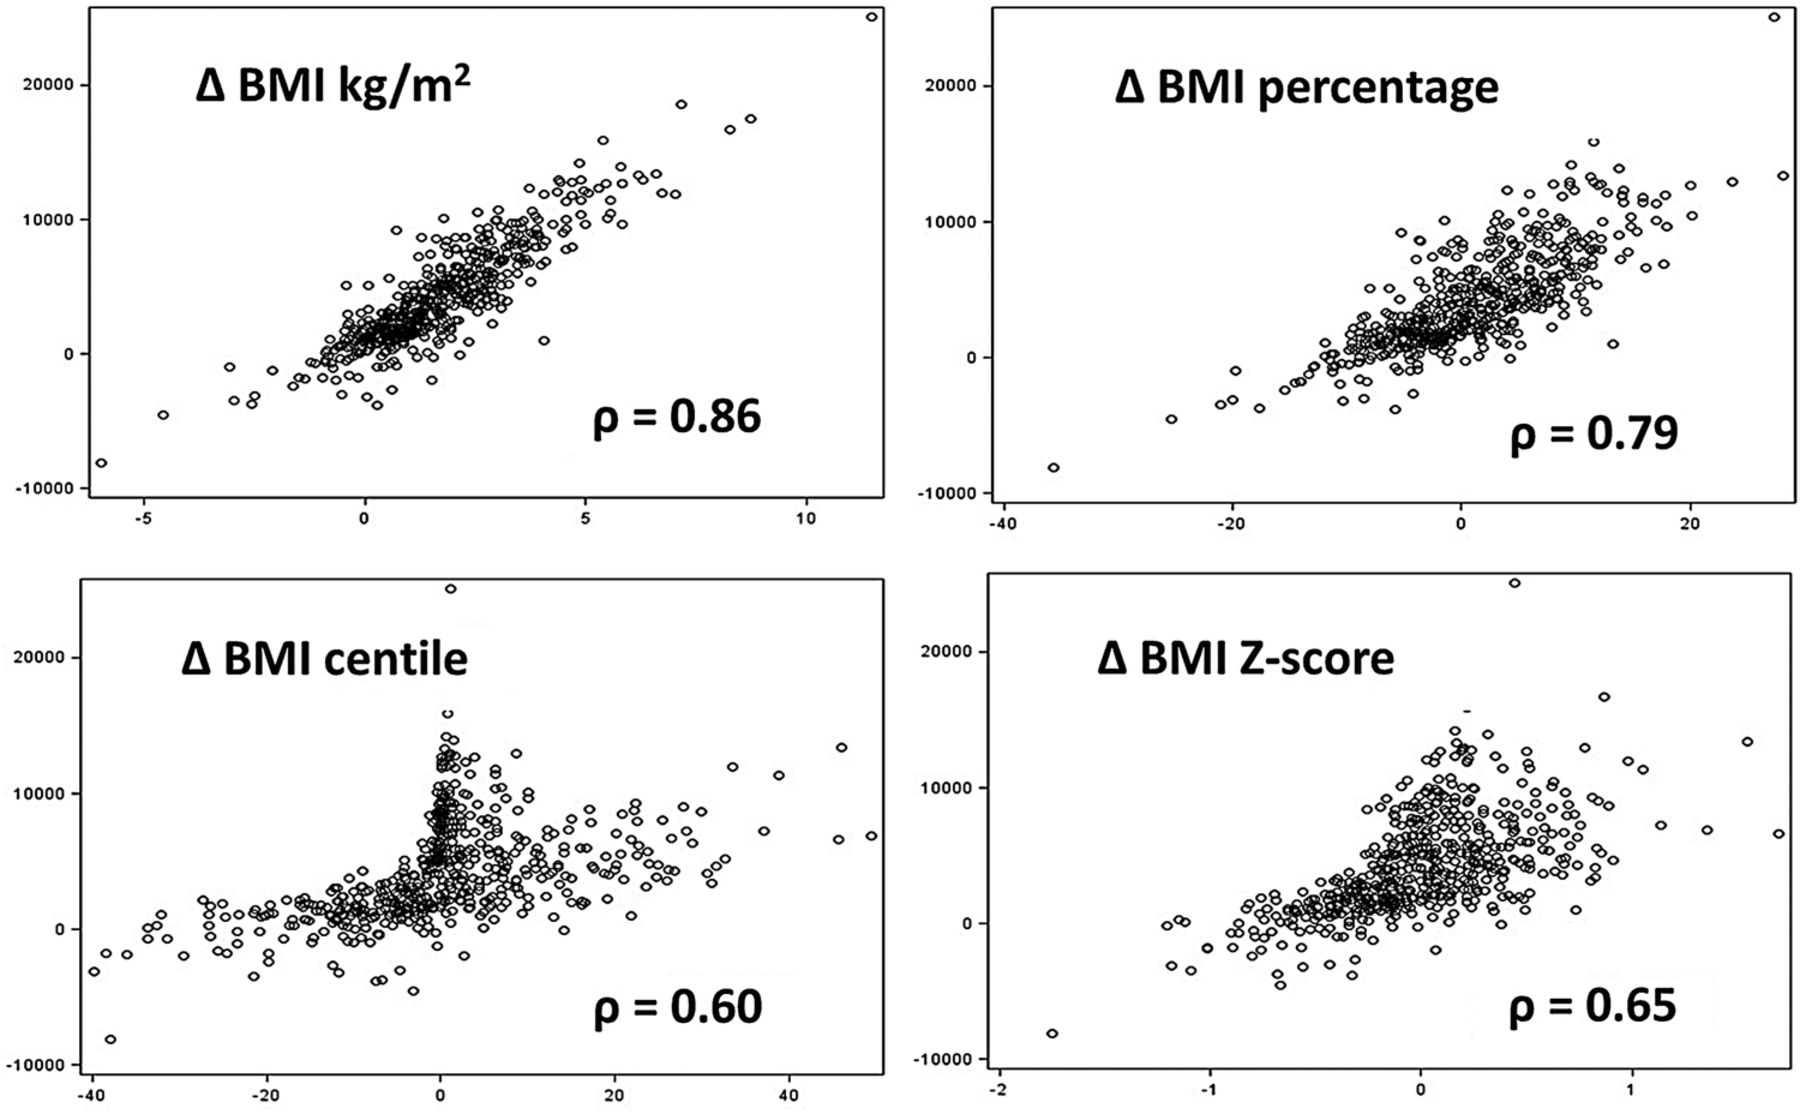 Identifying the best body mass index metric to assess